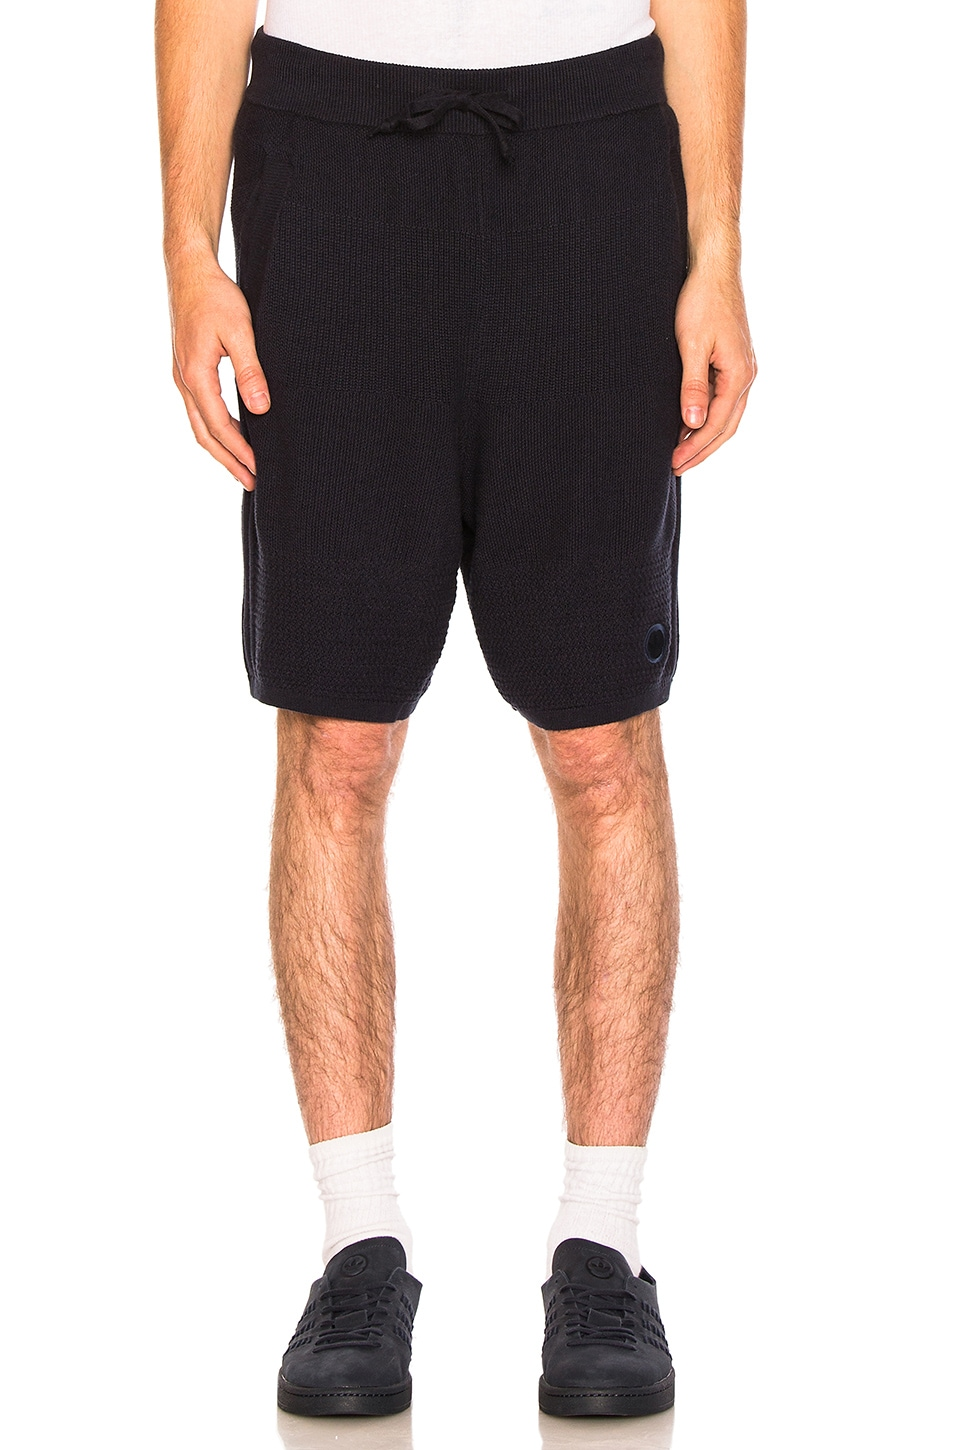 Linear Shorts by adidas by wings + horns